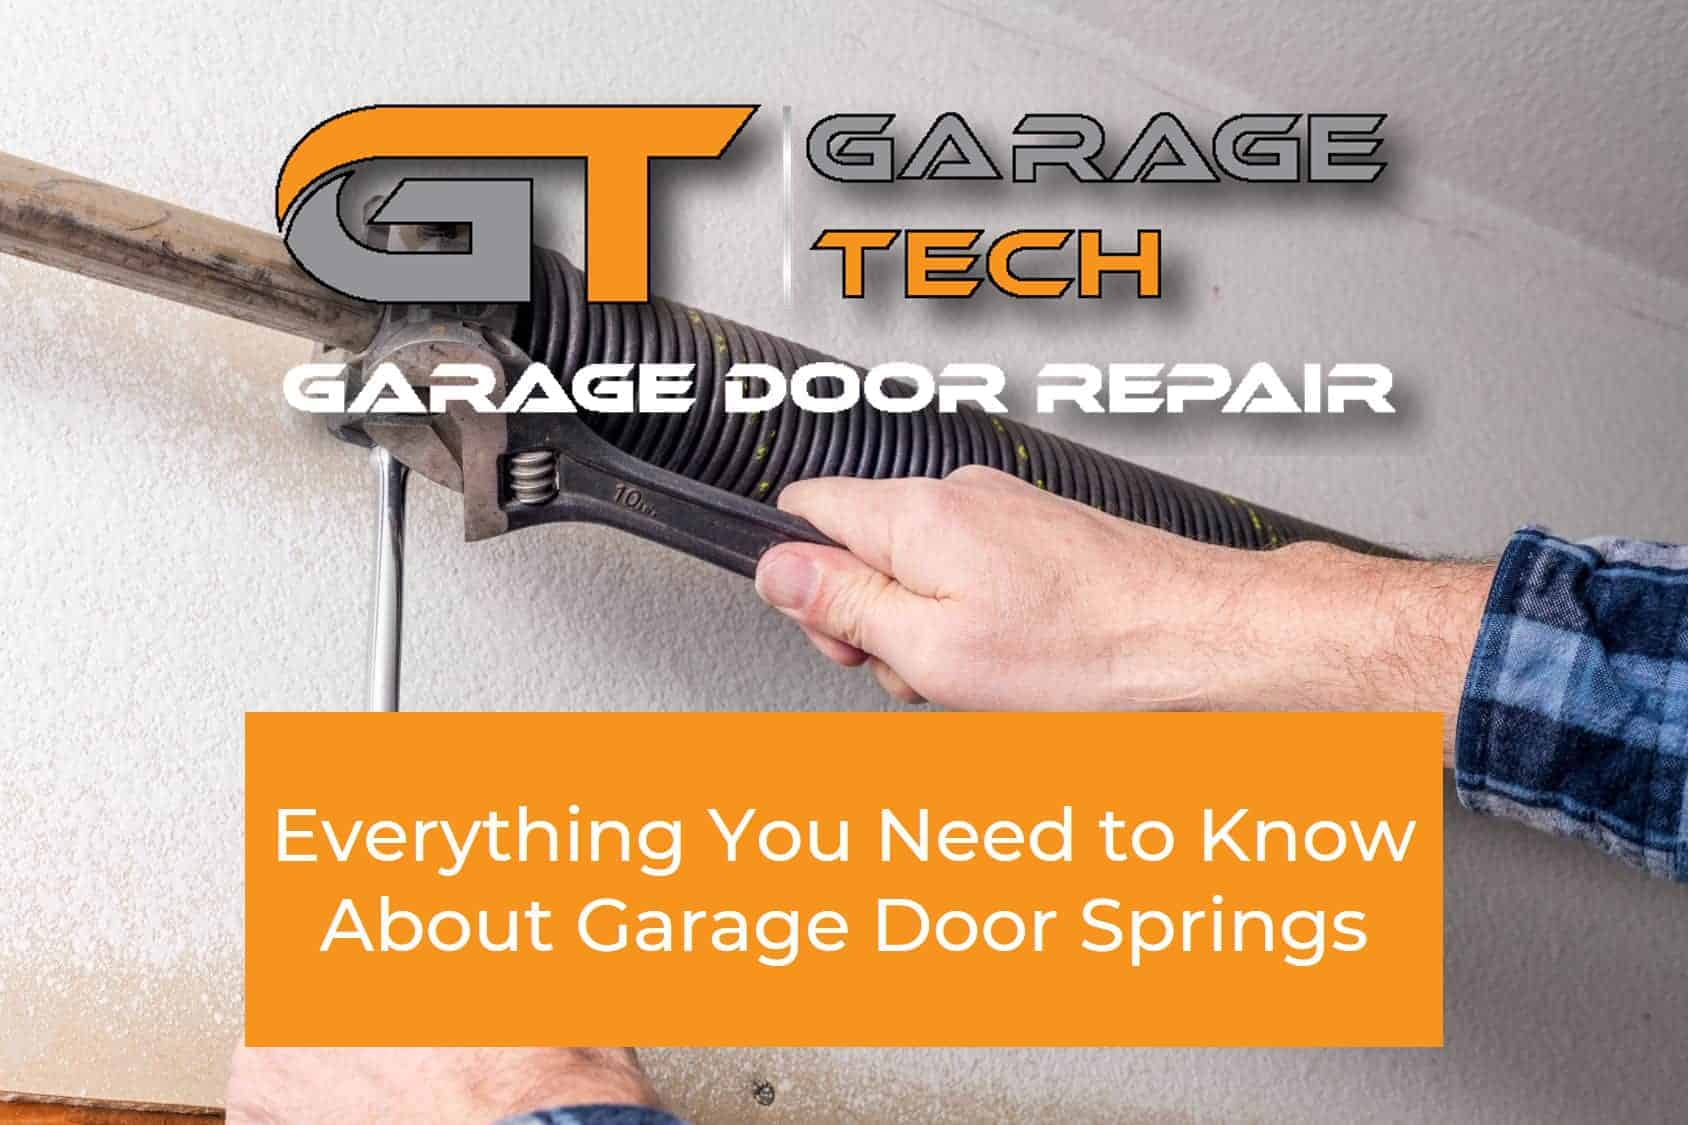 The 411 on Garage Door Springs